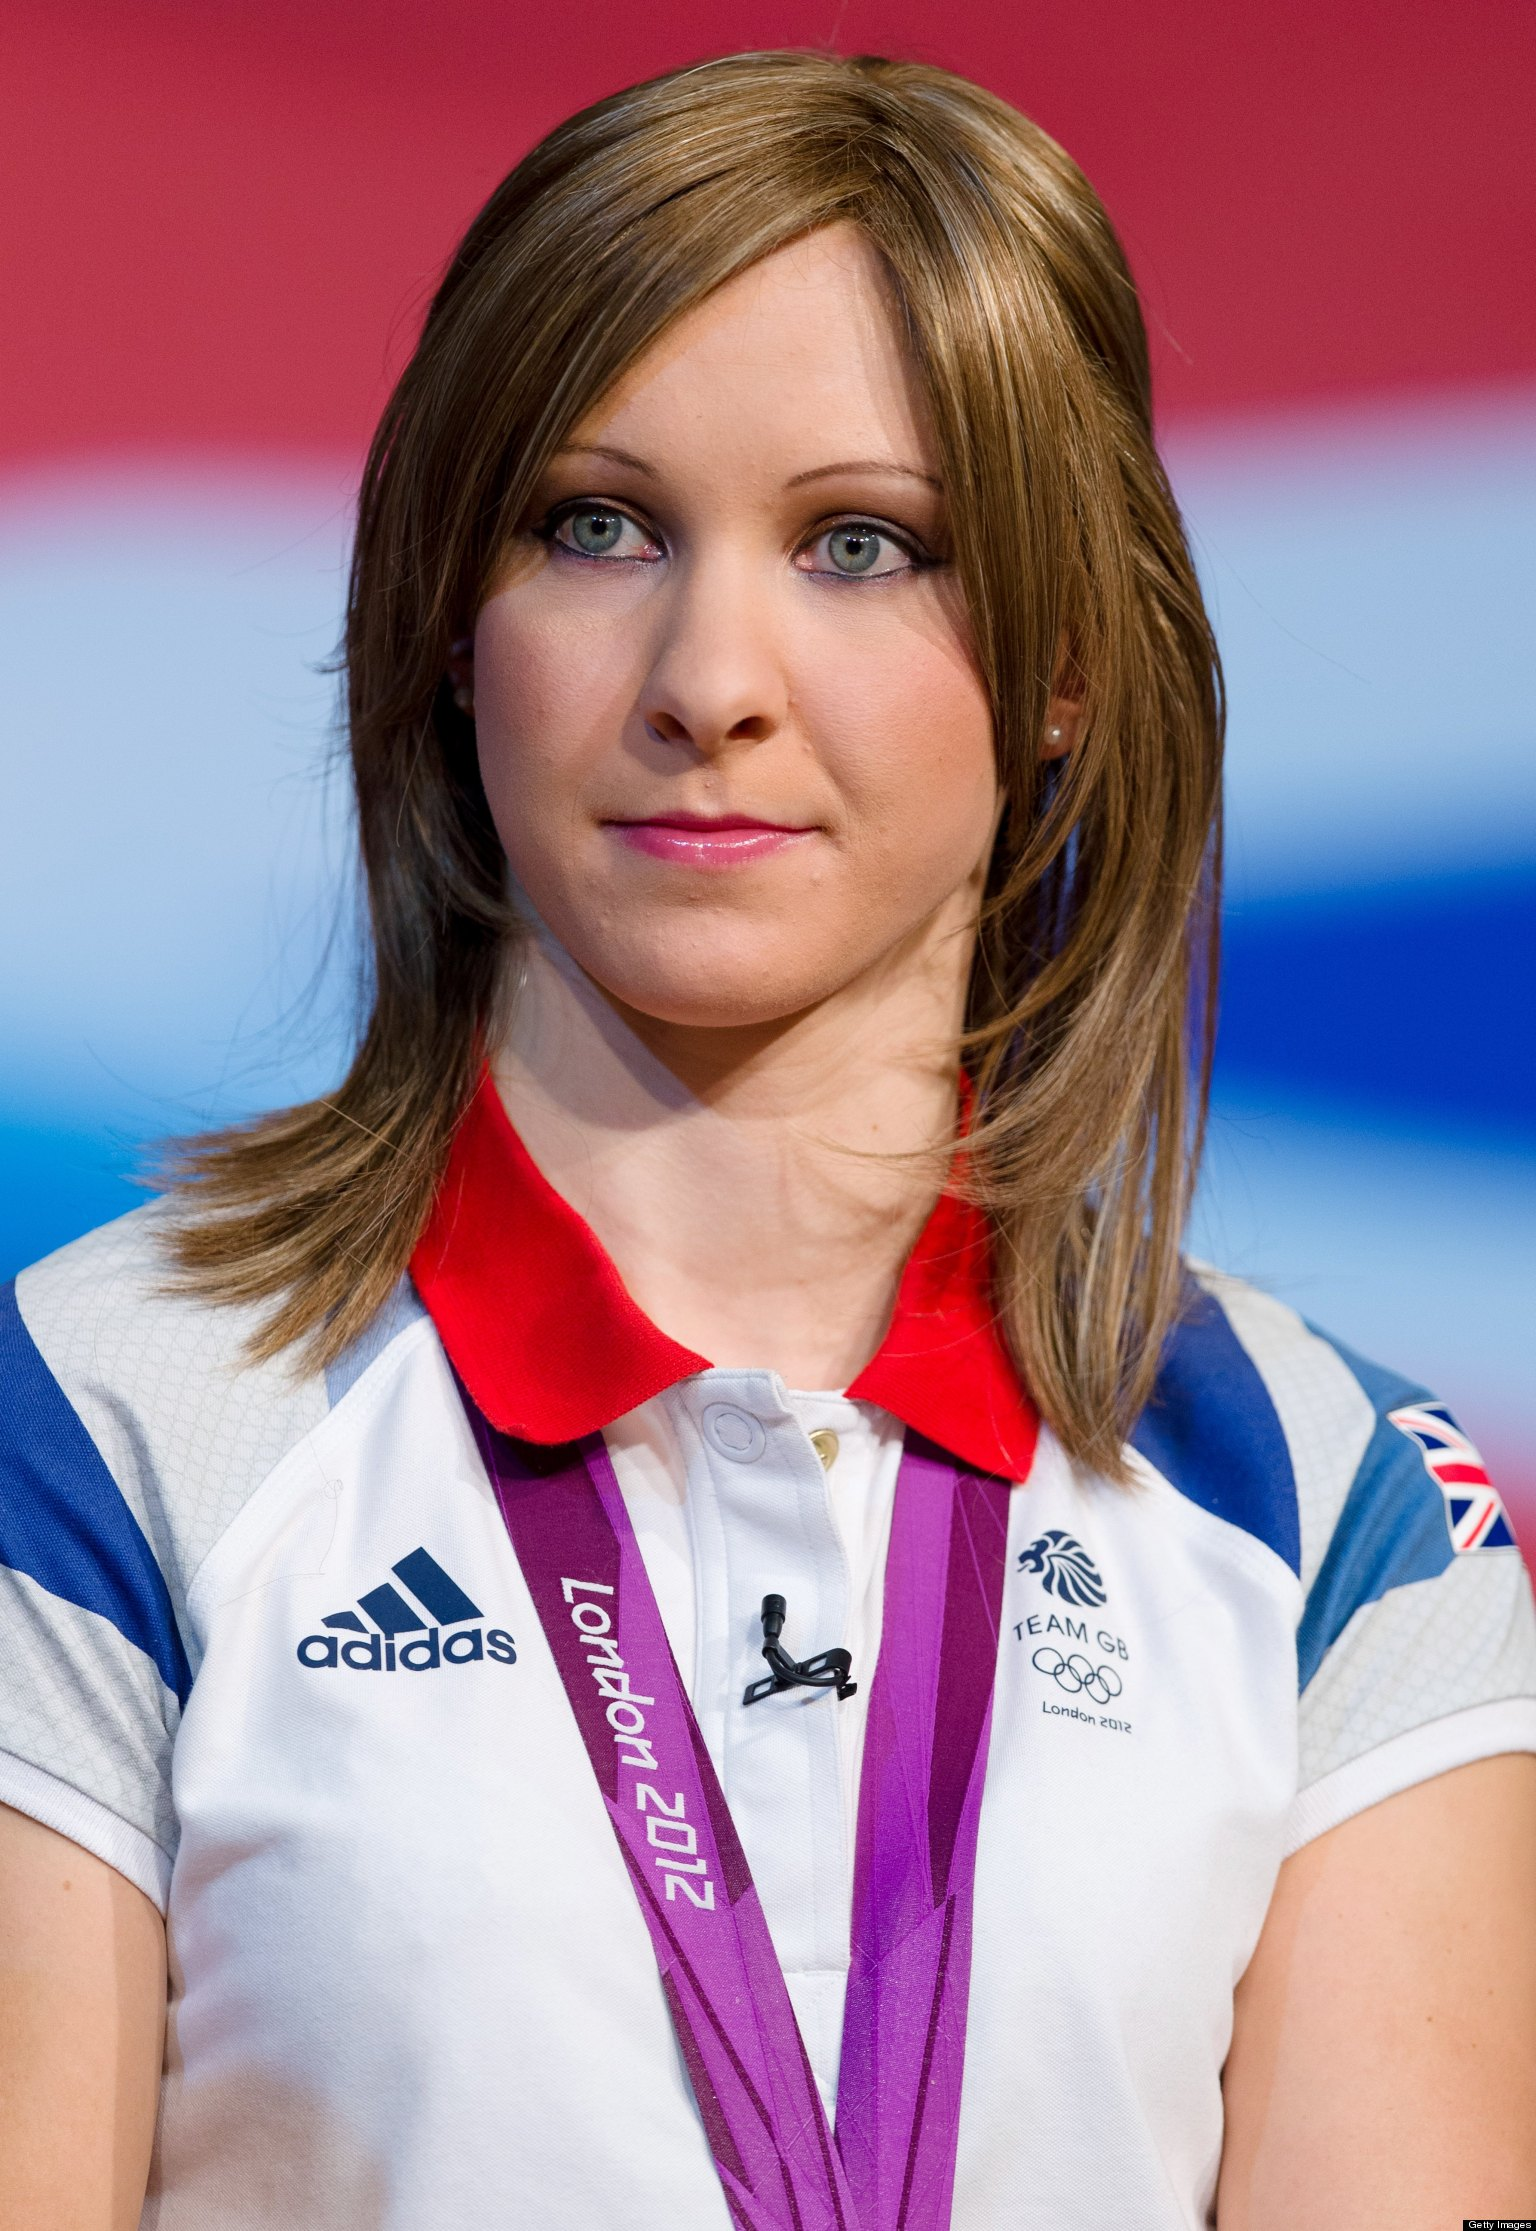 Joanna Row Olympic Cyclist In Road Accident